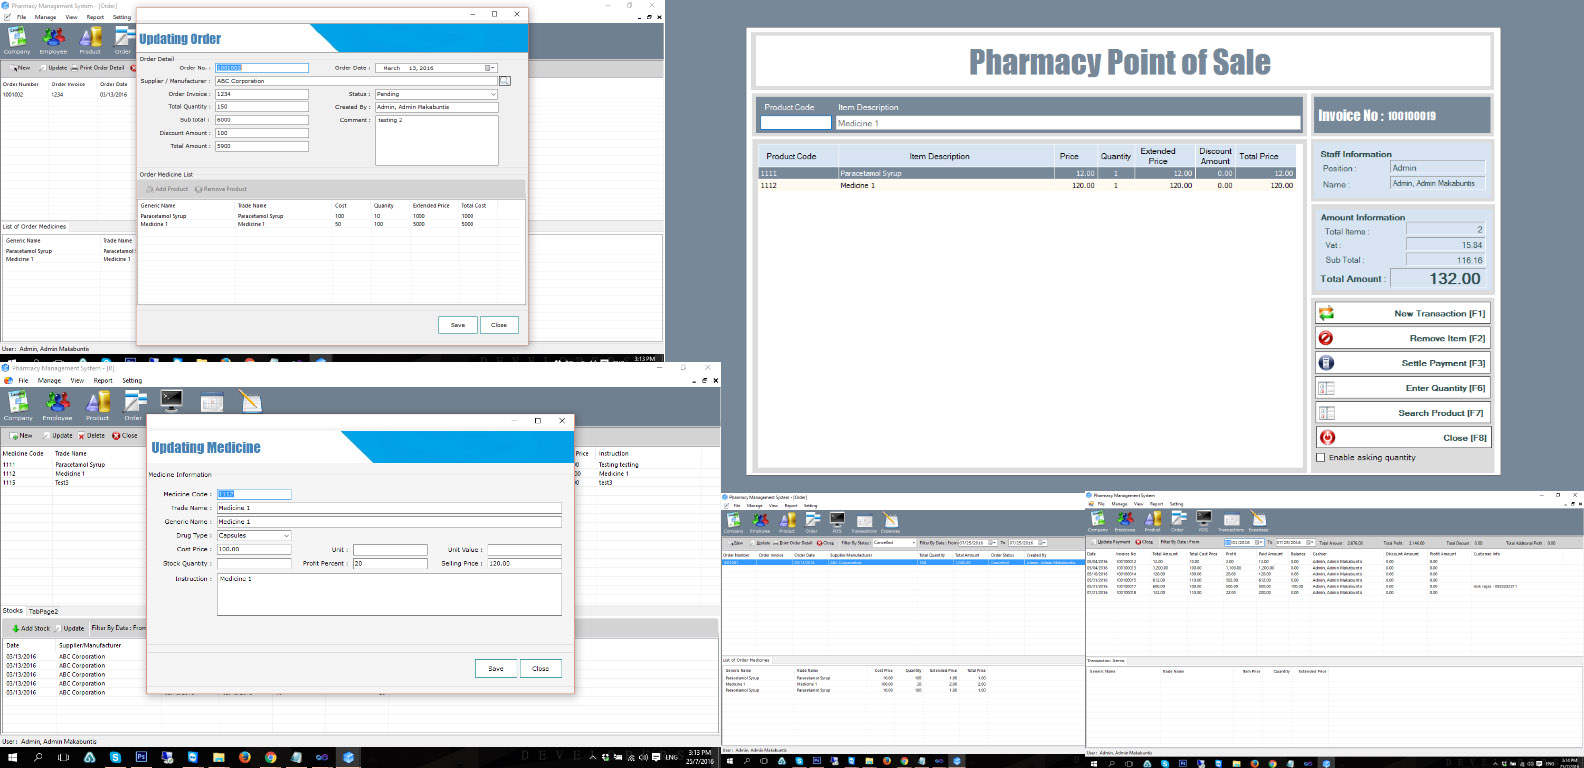 Literature review inventory management system pharmacy